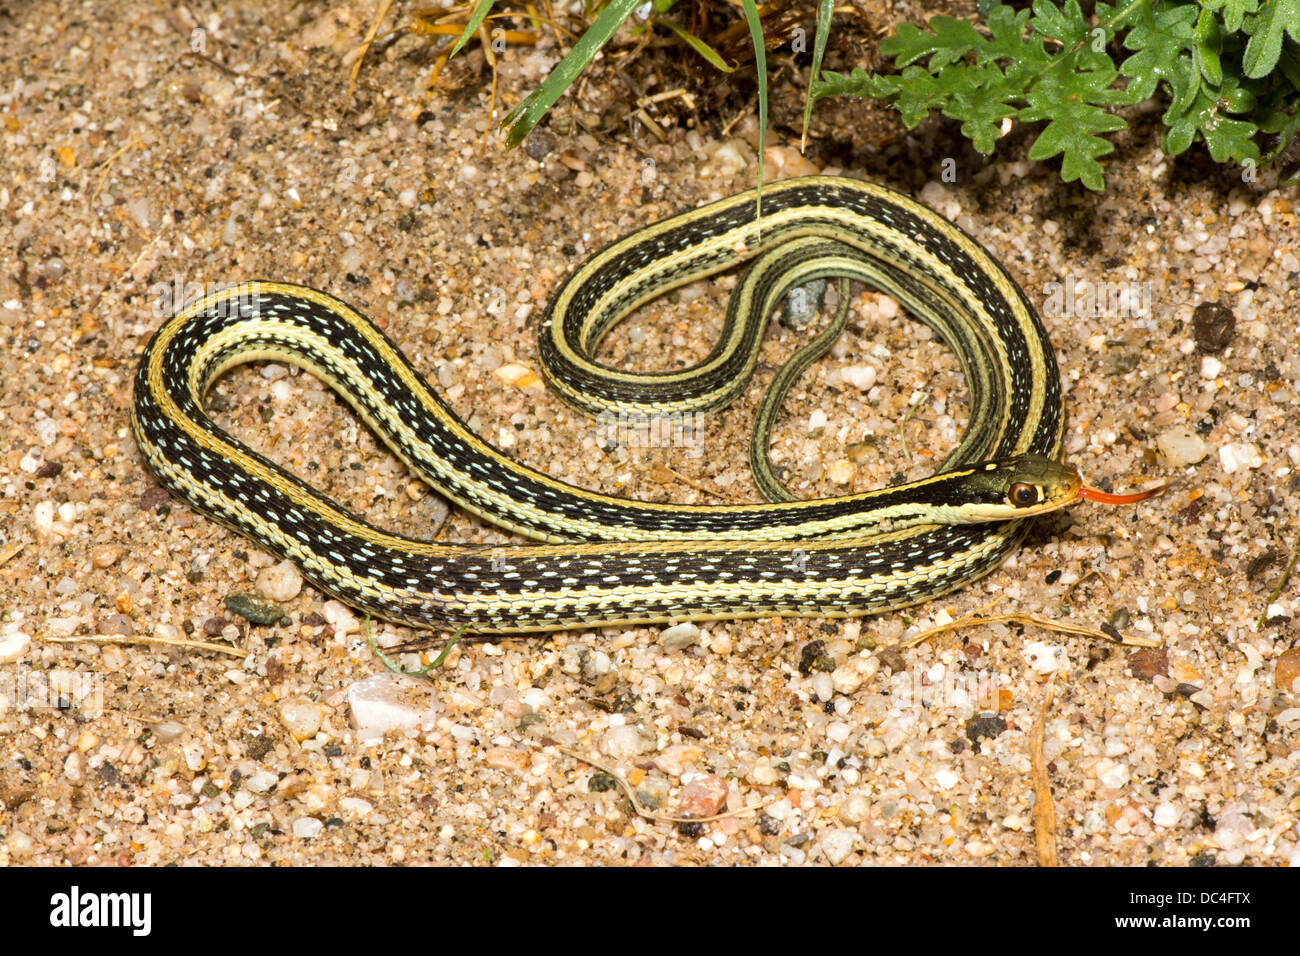 Western Ribbon Snake Thamnophis proximus origin unknown 21 July Adult Colubridae - Stock Image